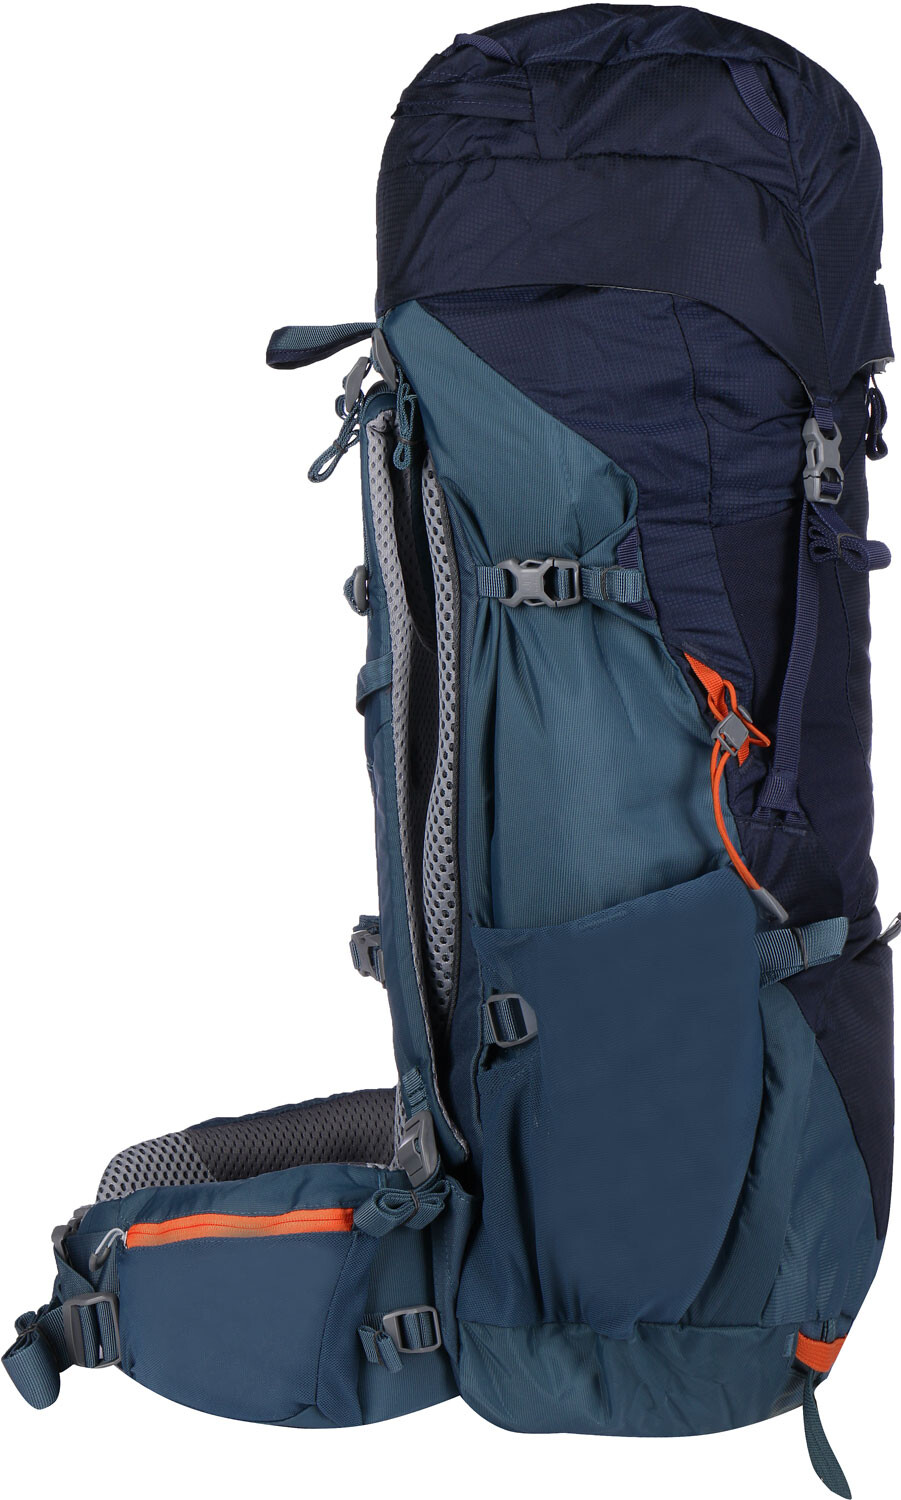 a9eed8be9a3 Deuter Aircontact Lite 50 + 10 Backpack blue at Addnature.co.uk